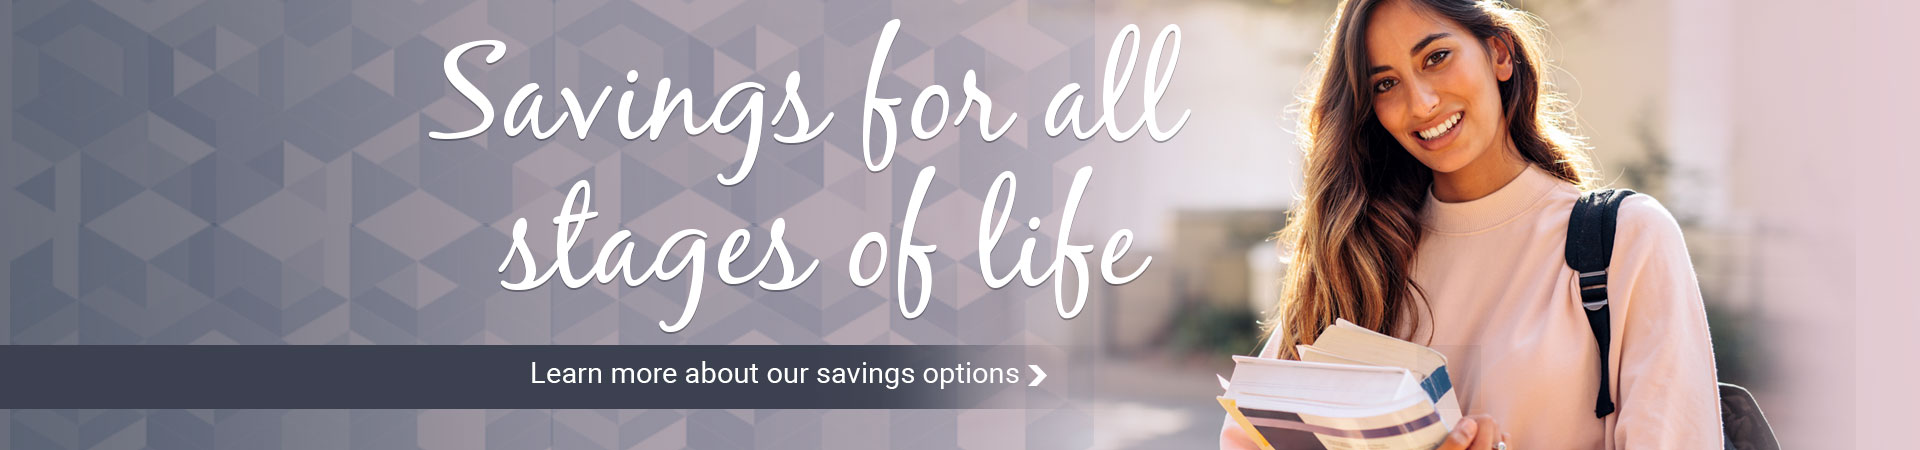 Learn more about our savings options